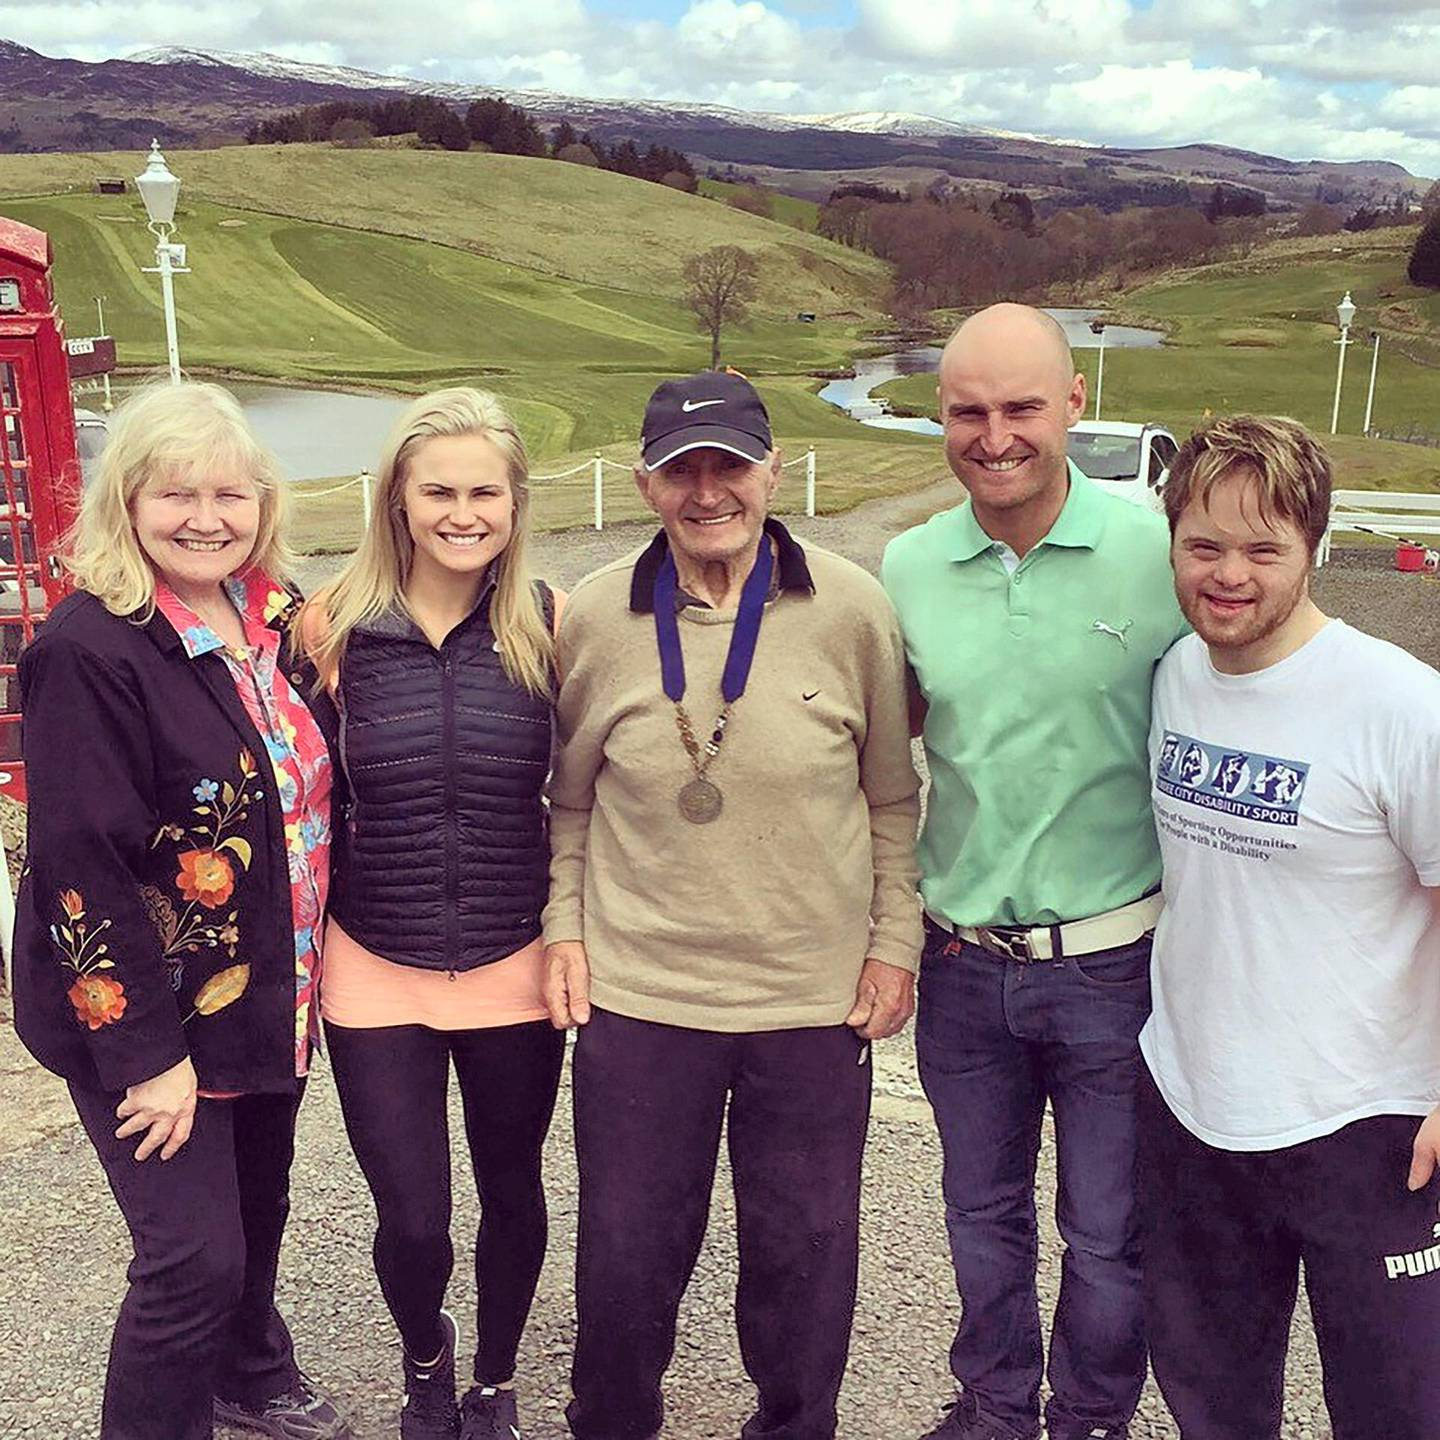 This is a family pic. Mum (Pauline Booth) me dad (Wally Booth) brother (Wallace) brother (Paul) my dad won a silver medal at commonwealth games for Olympic wrestling 2016 marked 50 years ago.